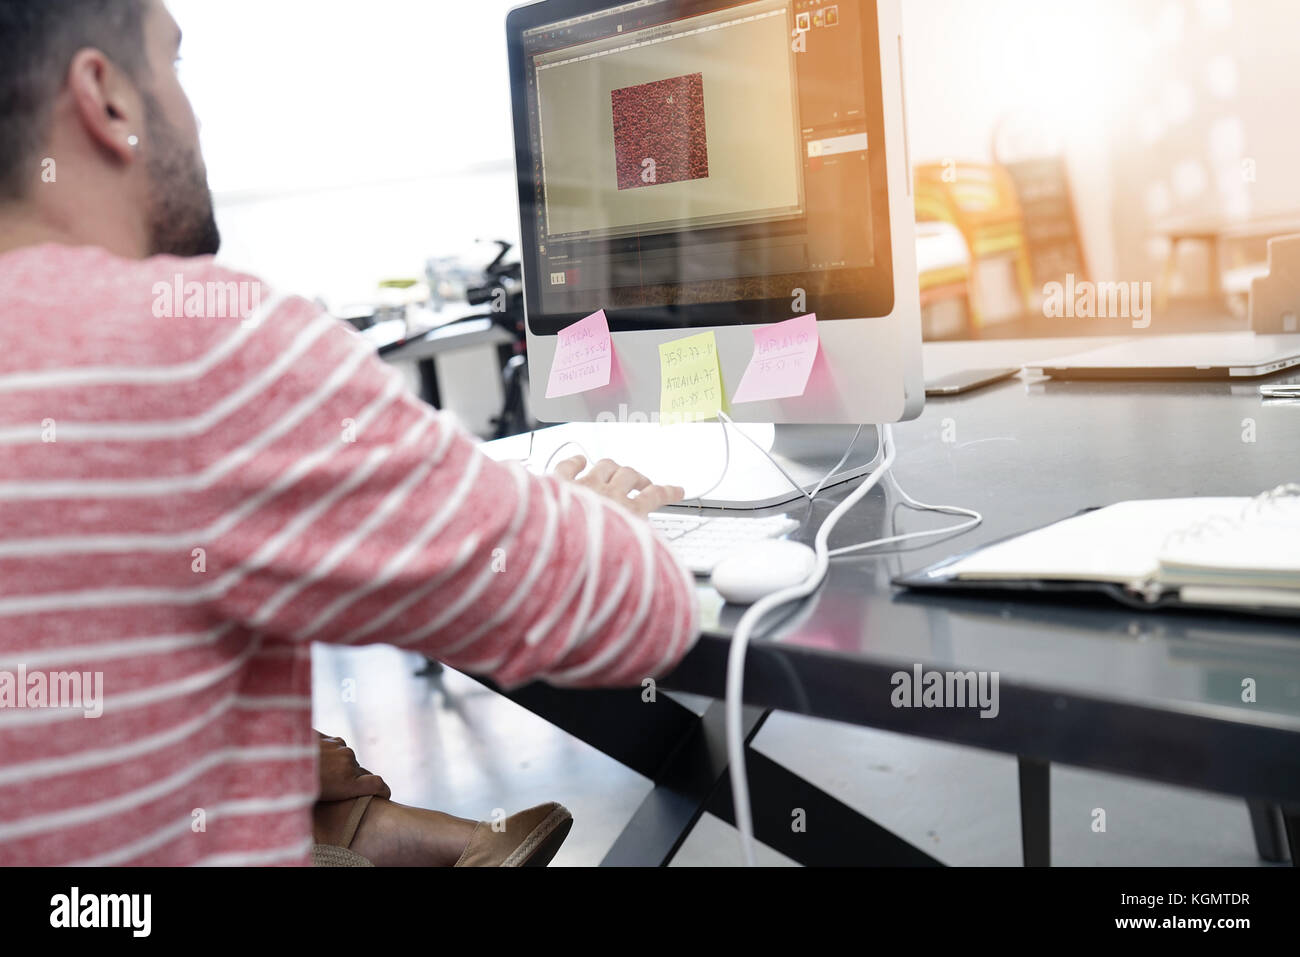 back view of man working on desktop in office - Stock Image